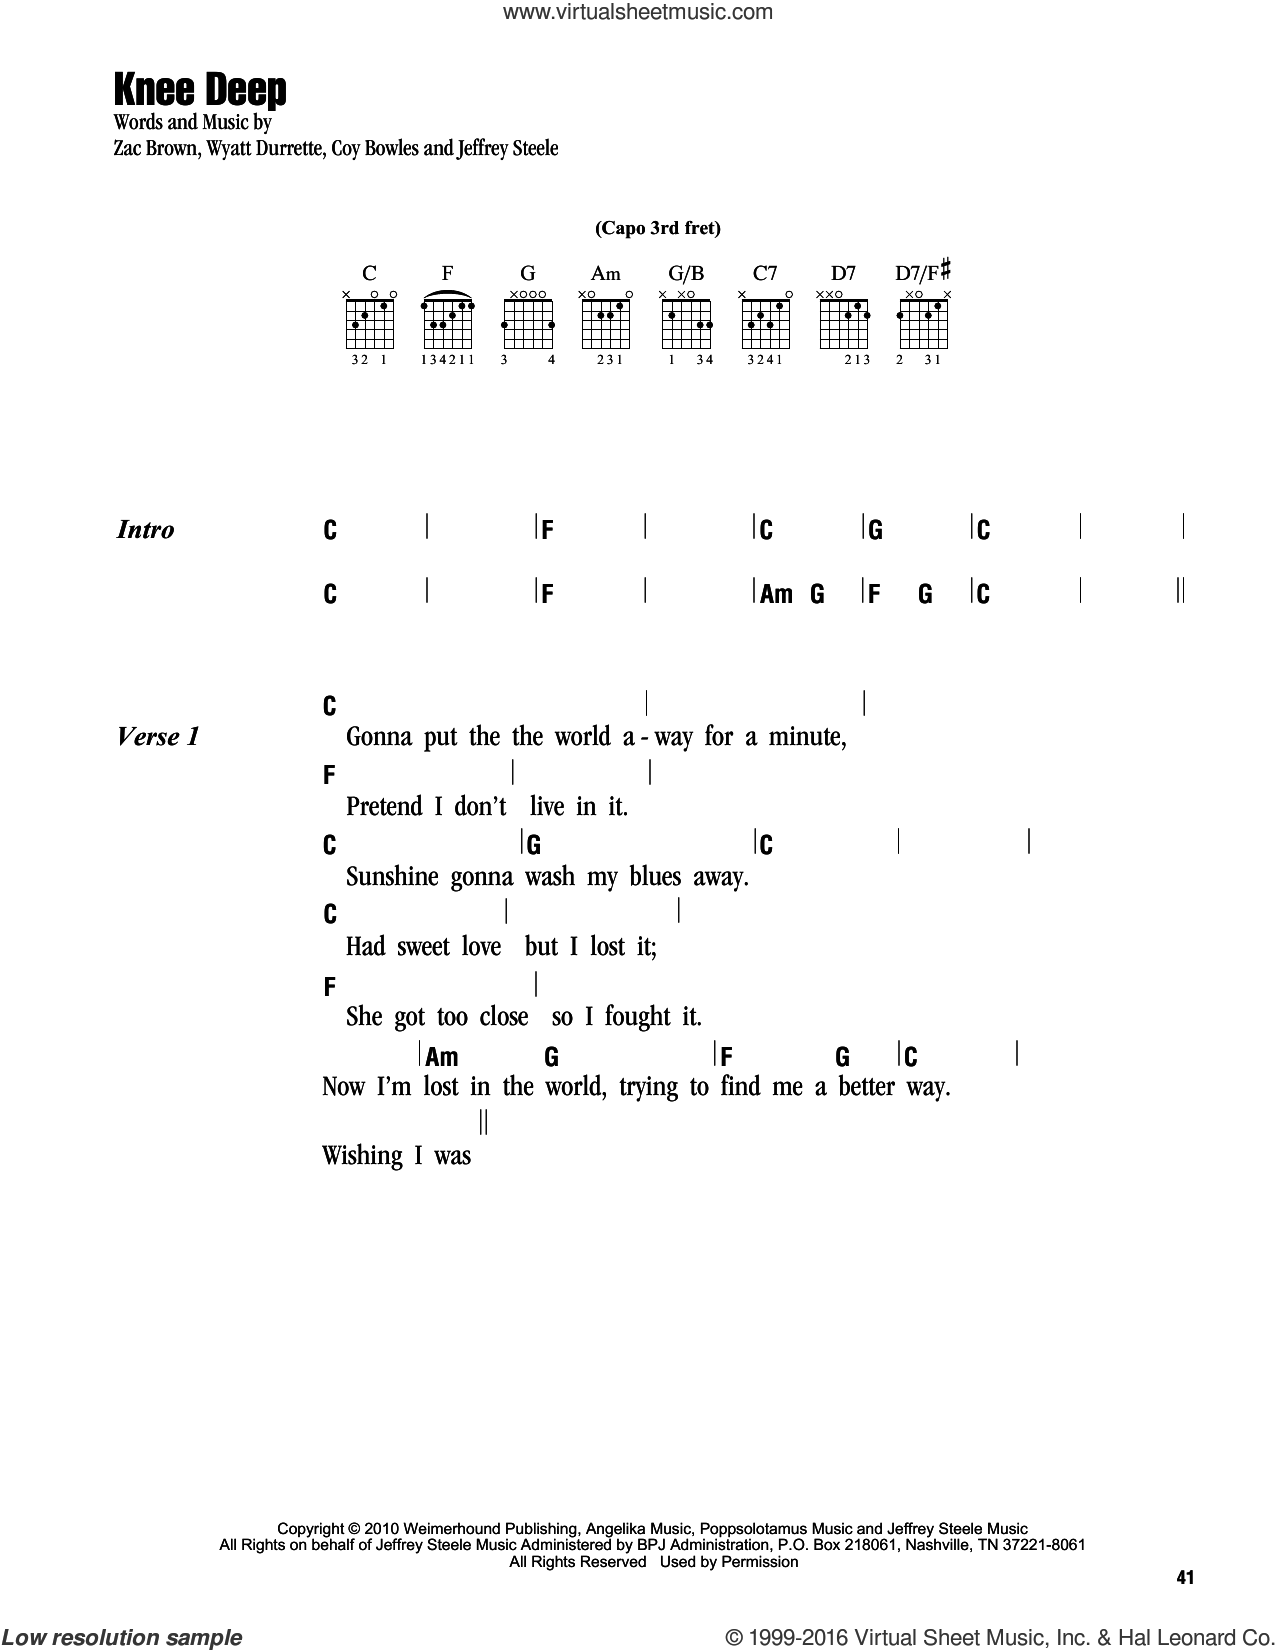 Knee Deep sheet music for guitar (chords) by Zac Brown Band featuring Jimmy Buffett, Coy Bowles, Jeffrey Steele, Wyatt Durrette and Zac Brown, intermediate skill level